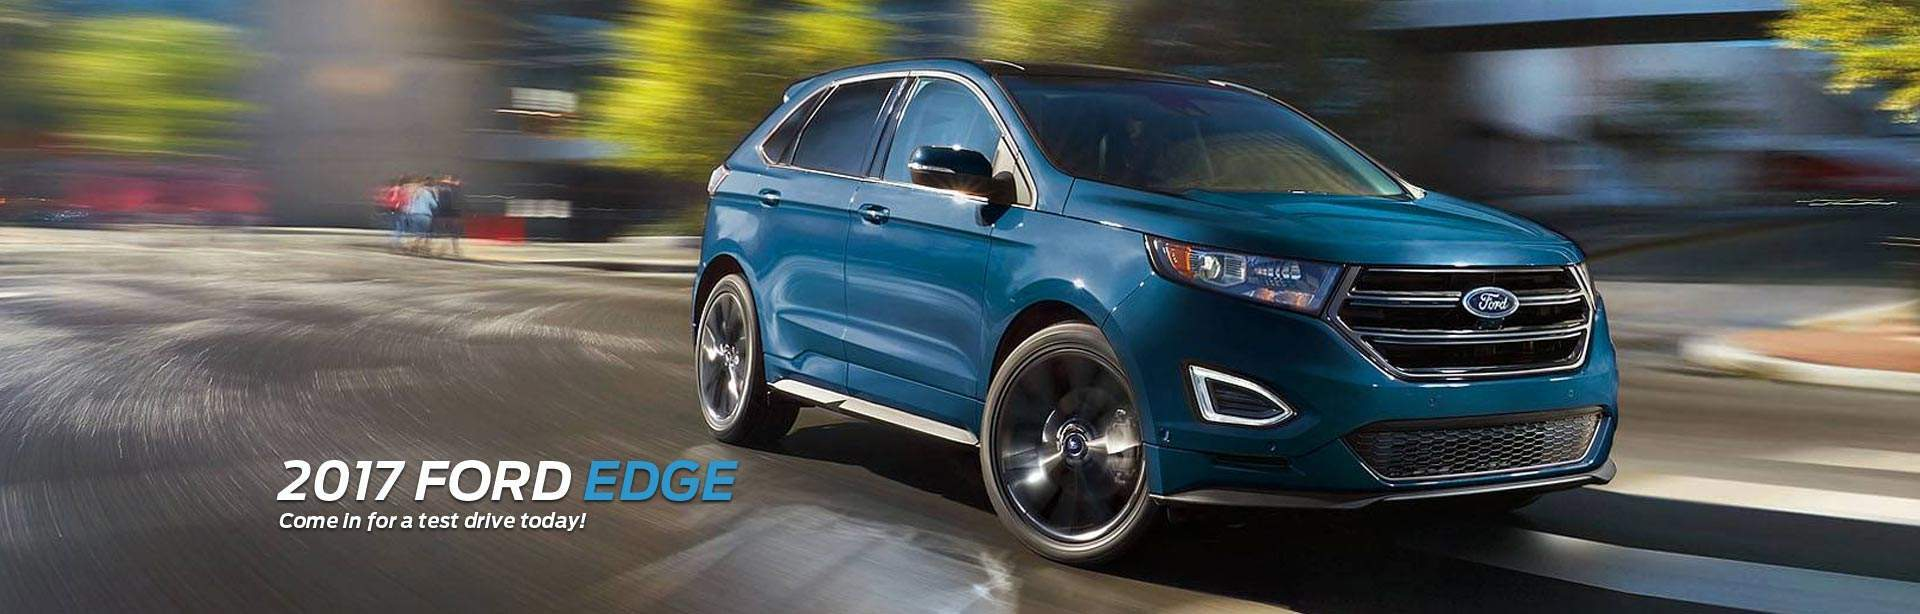 2017 Ford Edge at Eckenrod Ford Lincoln